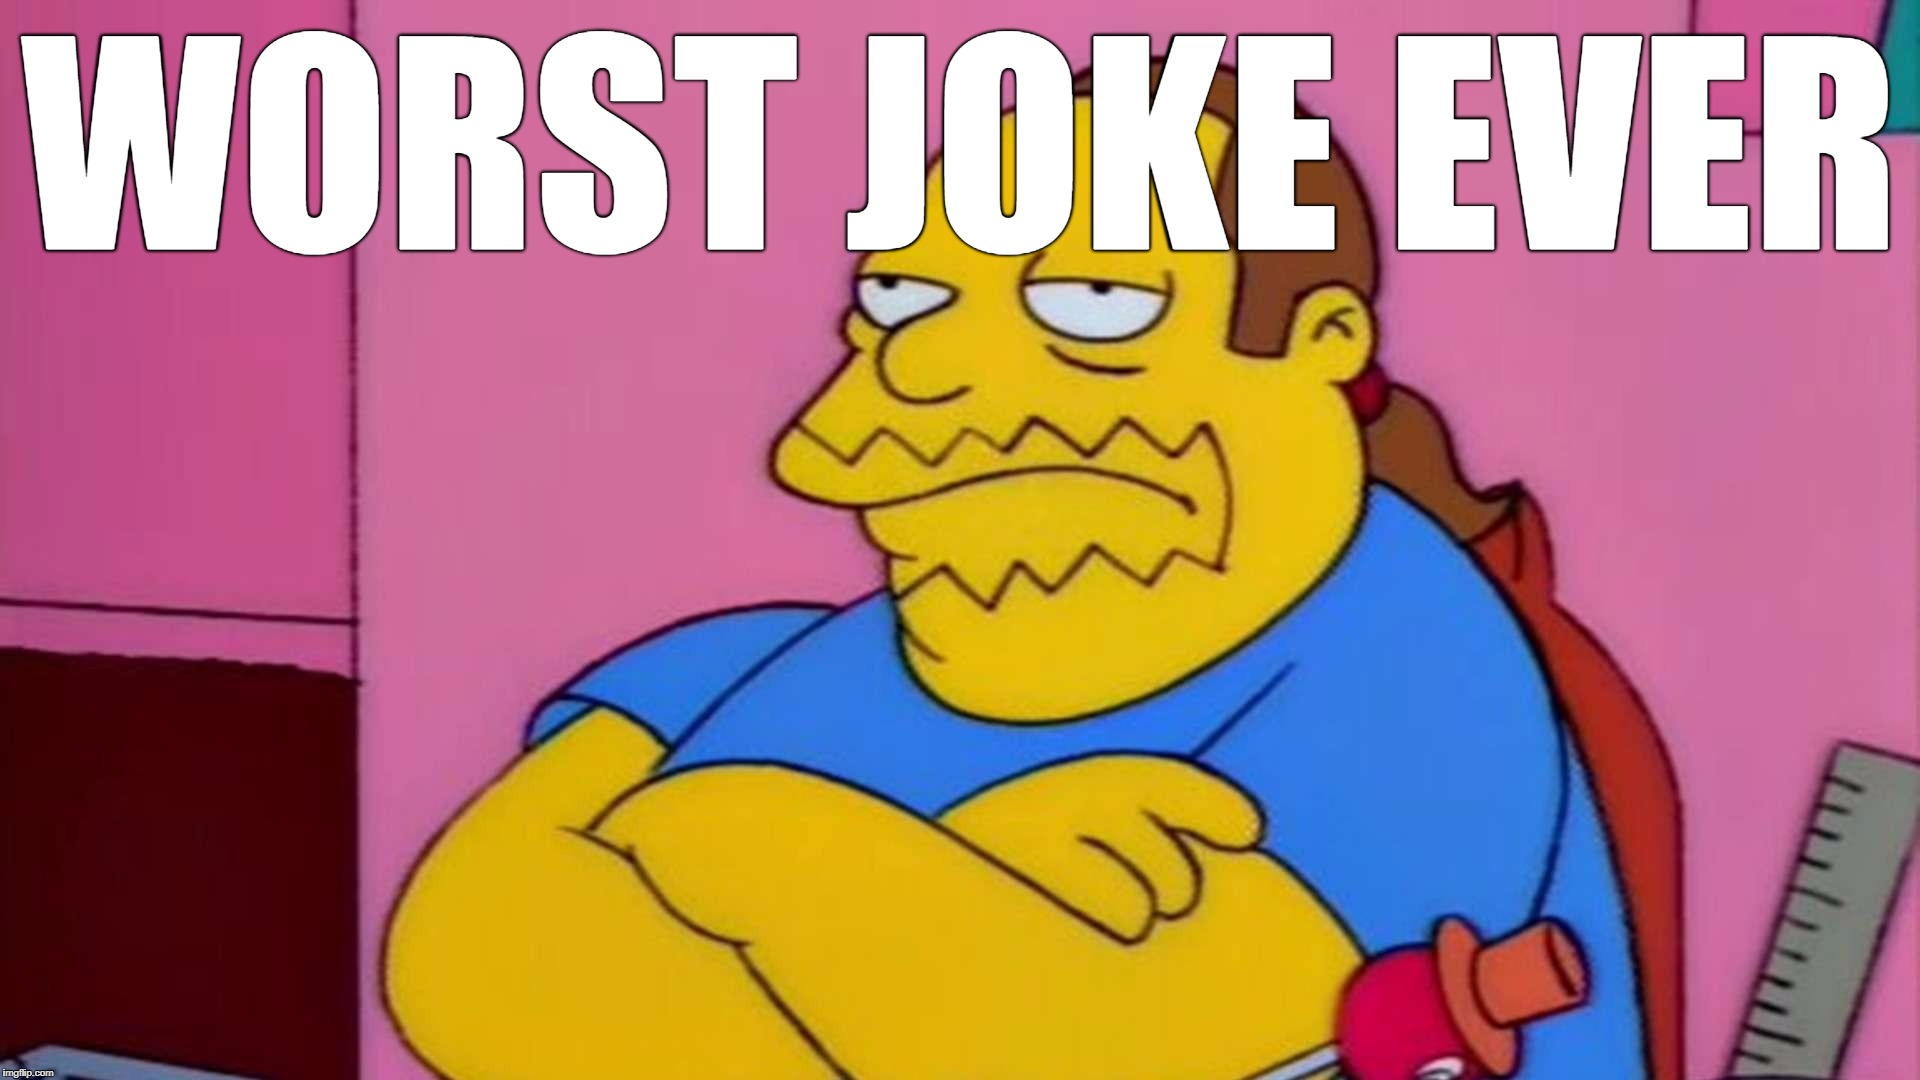 WORST JOKE EVER | image tagged in comic book guy | made w/ Imgflip meme maker